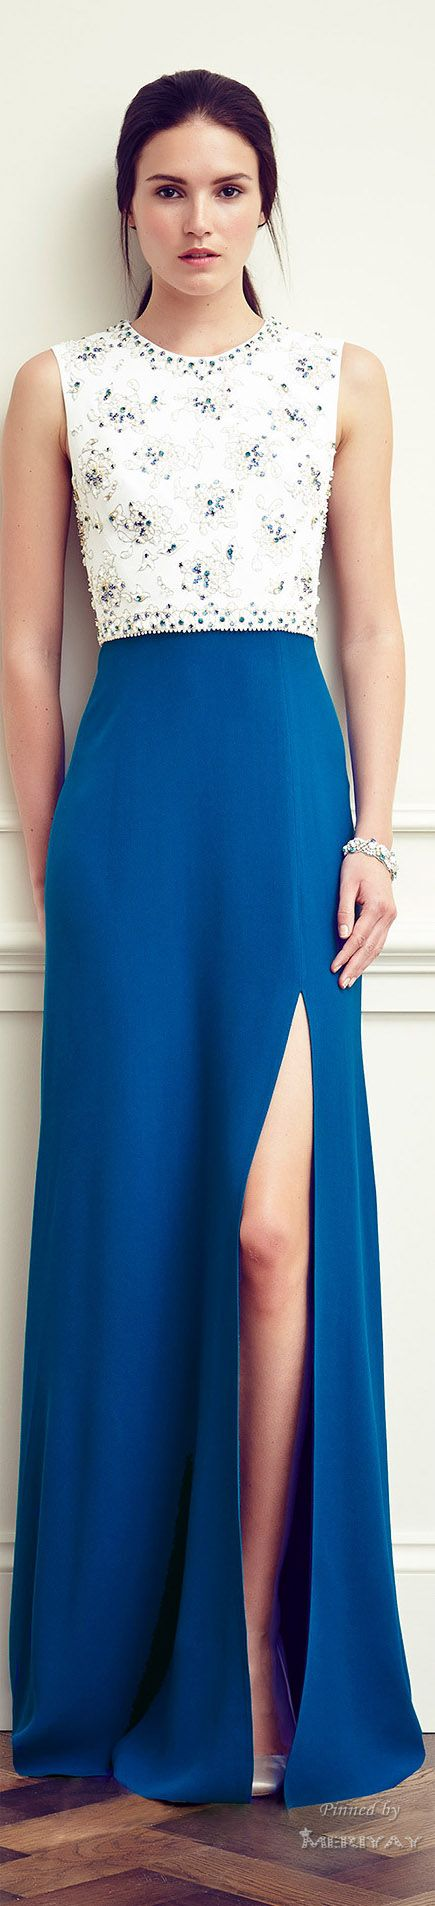 With a less intense slit, this would be dynamite! Would LOVE to own..